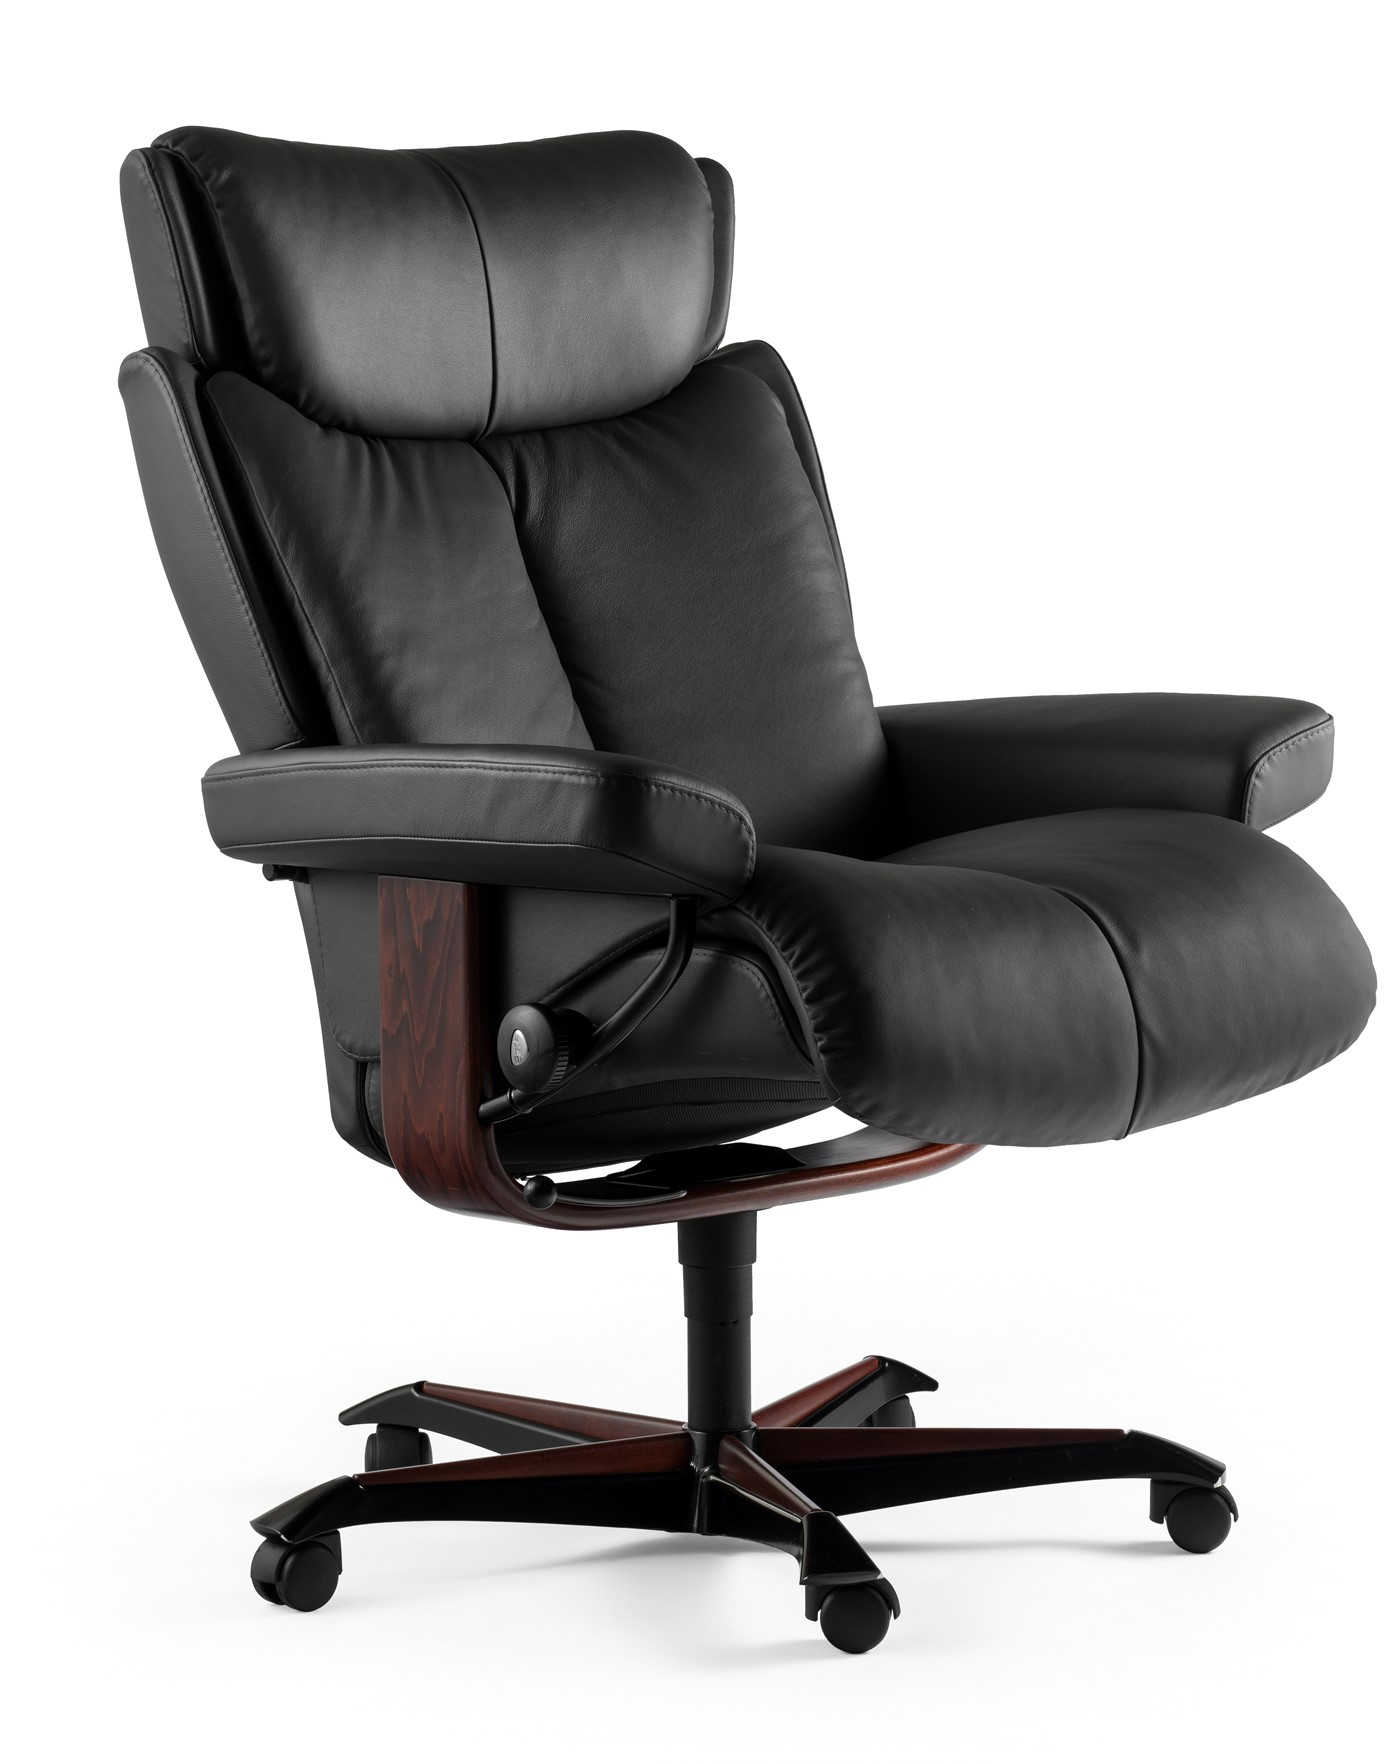 most comfortable office chair. Simple Office Tax Time Savings With The Worldu0027s Most Comfortable Office Chairs   Easyliving Furniture U0026 Interiors Inside Most Comfortable Office Chair L